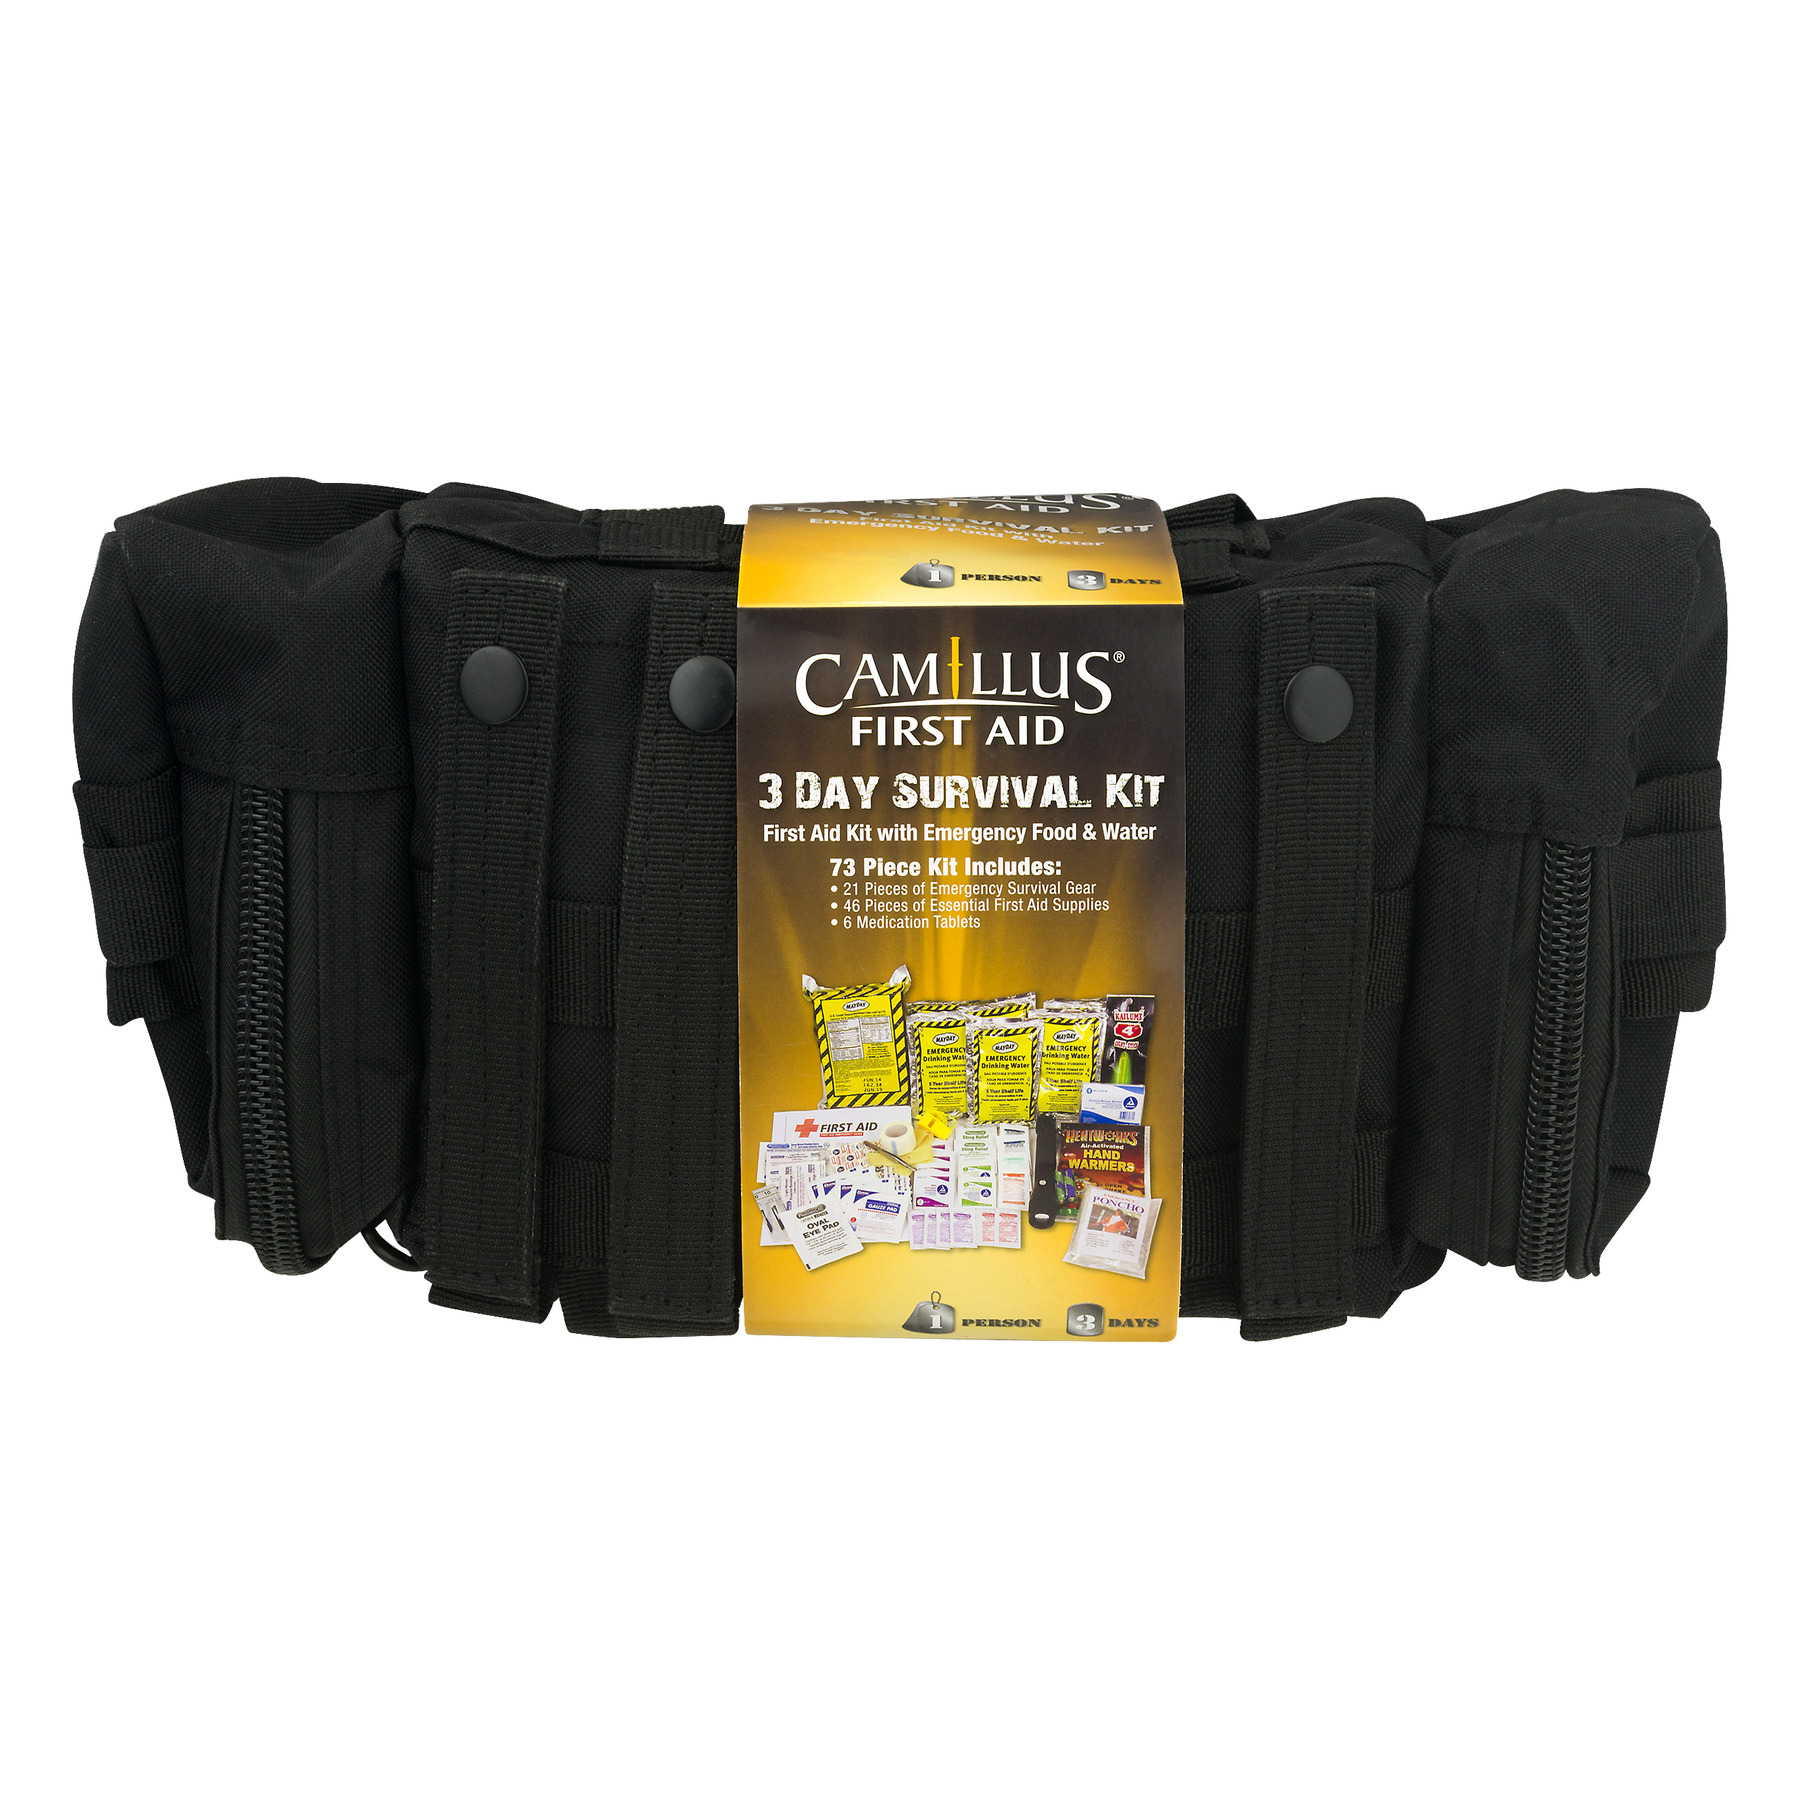 Camillus First Aid 3 Day Survival Kit 73 PC, 1.0 CT by ACME UNITED CORPORATION